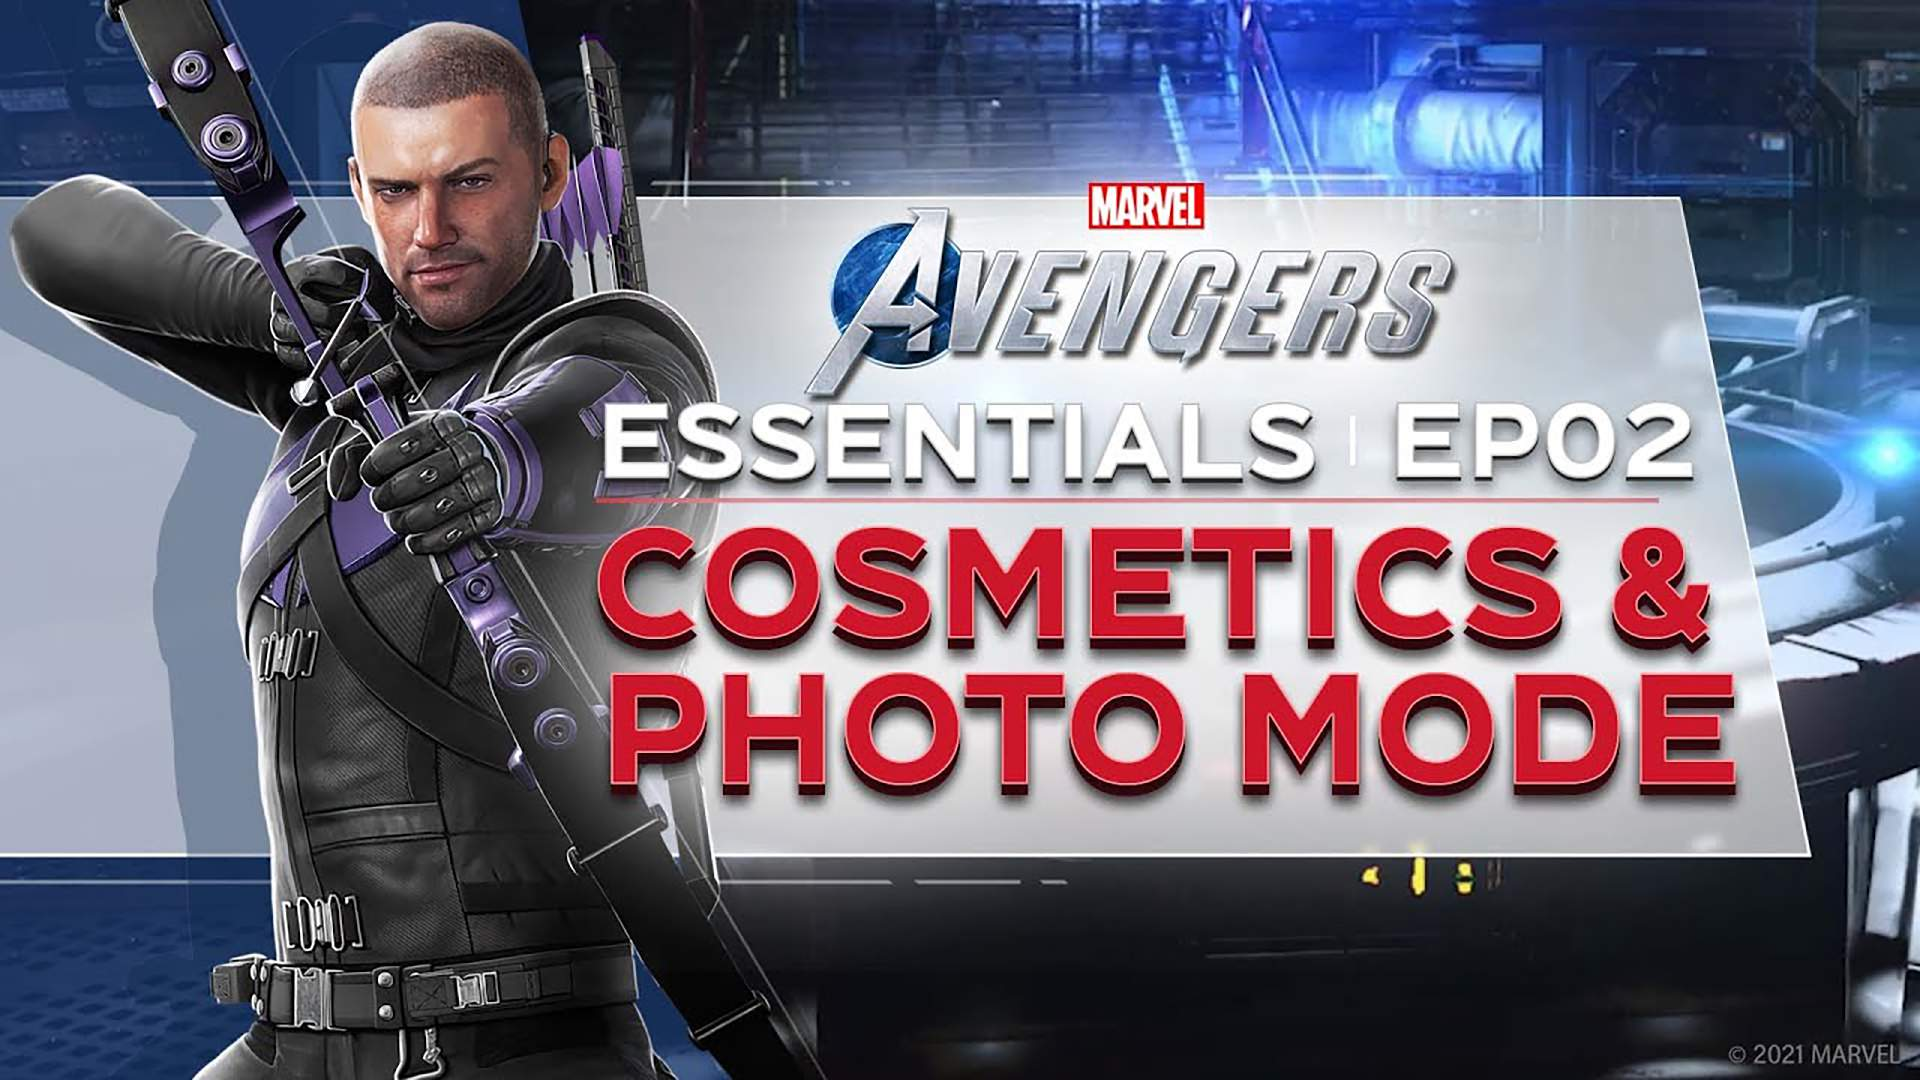 Marvel's Avengers Essentials, Episode 2: Cosmetics & Photo Mode